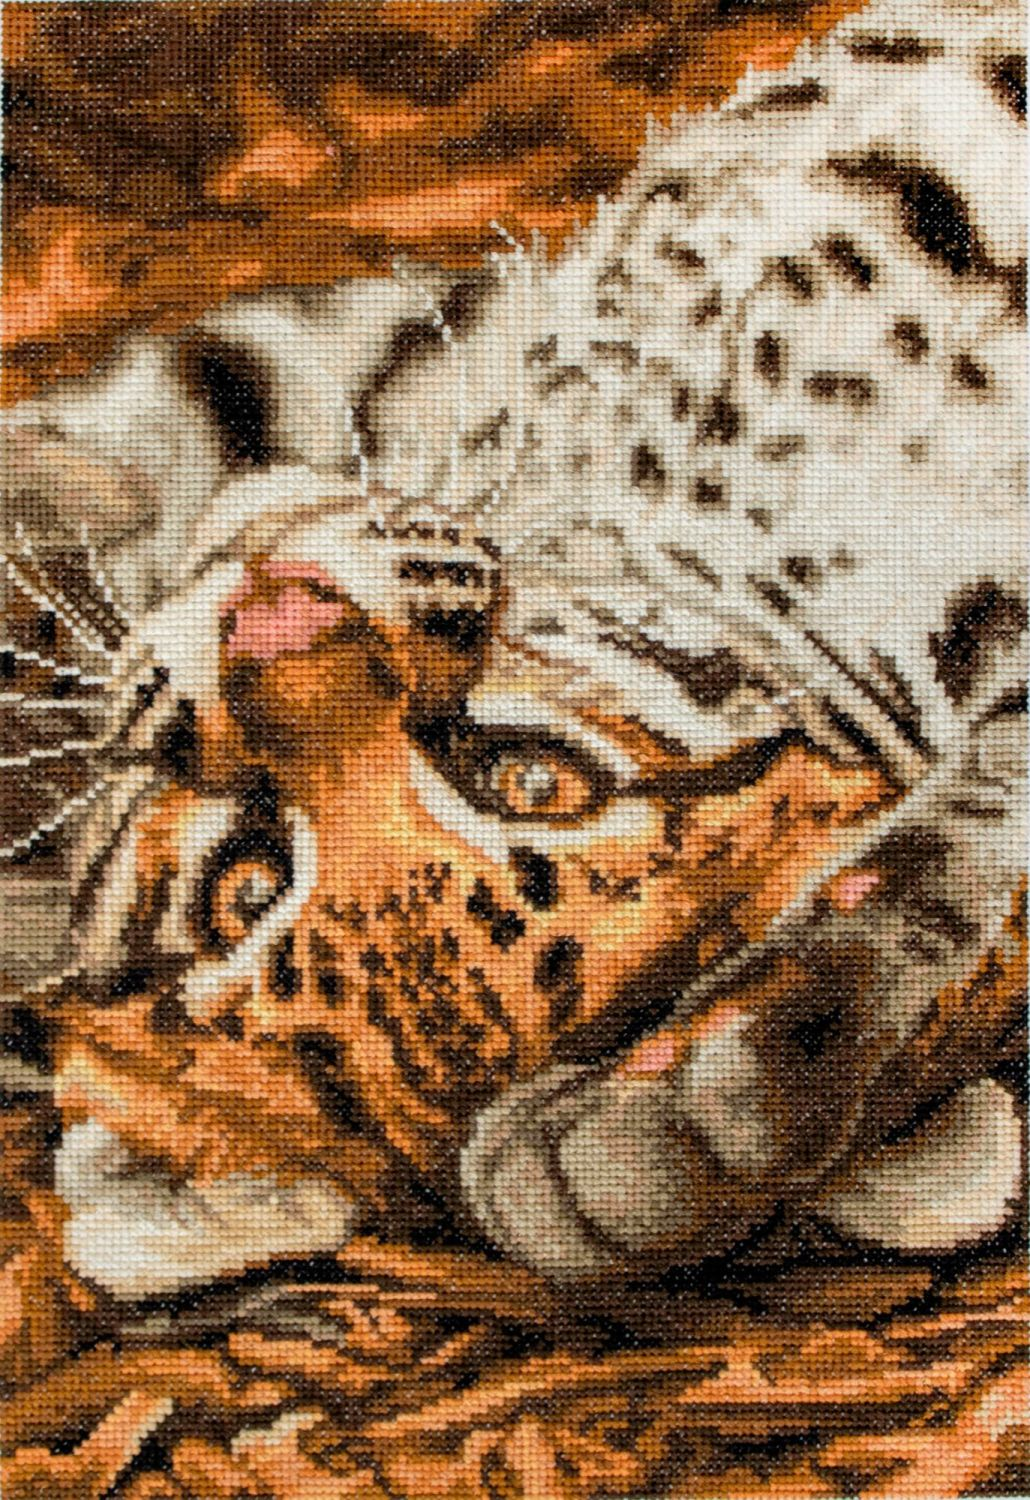 I Want to Play - Leopard Cross Stitch - Luca-S